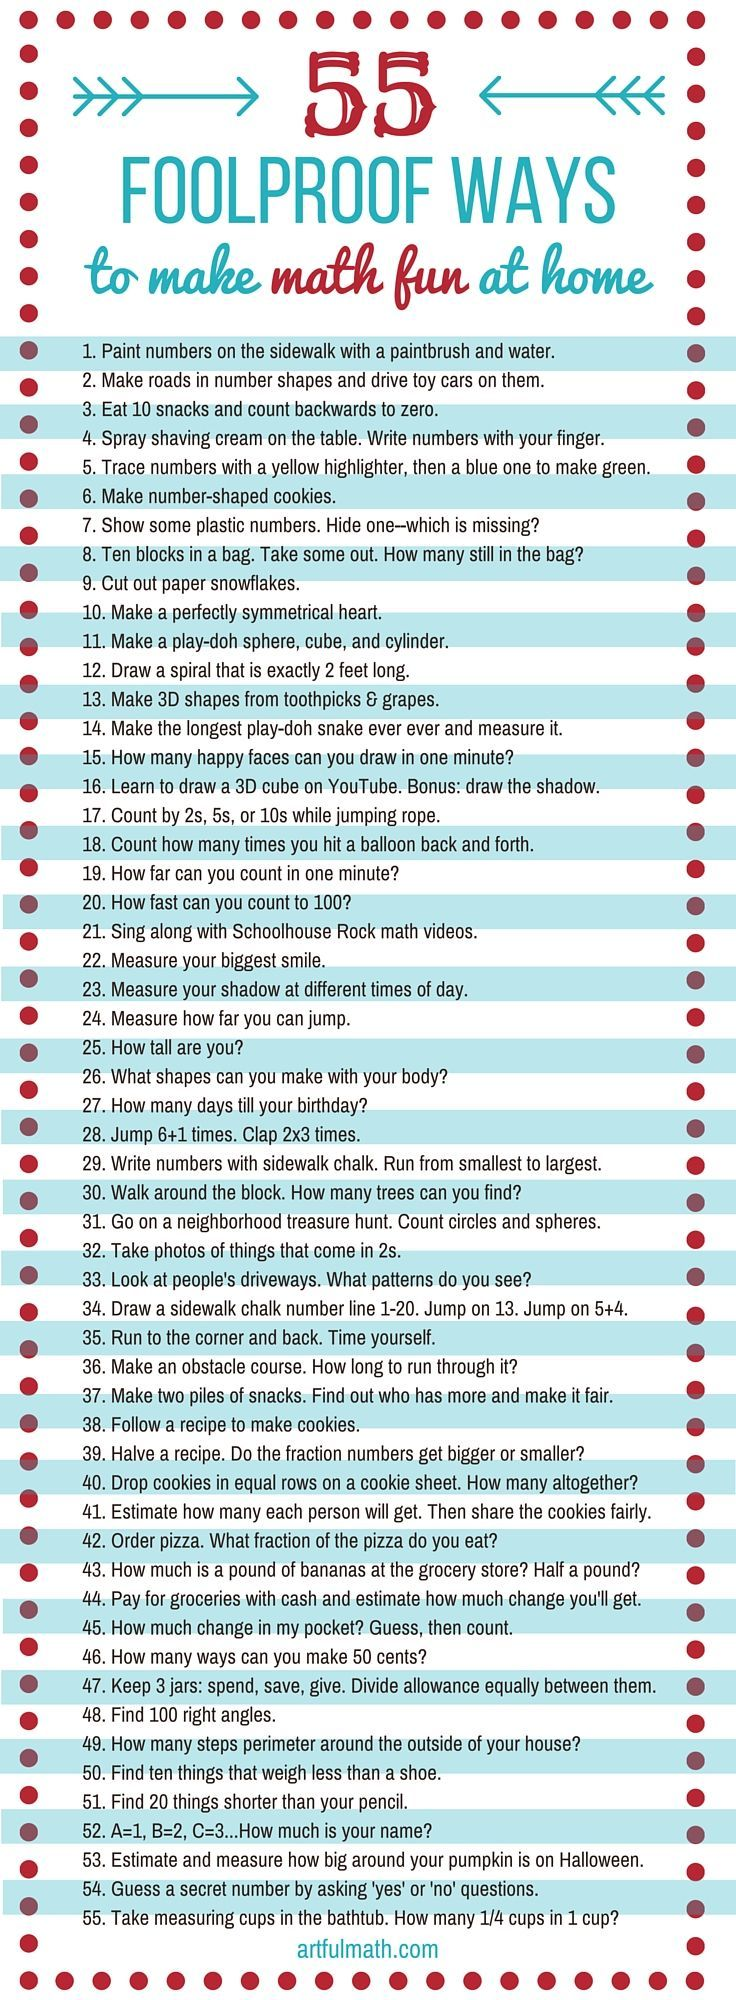 55 Foolproof Ways to Make Math Fun At Home. So many great ideas here ...